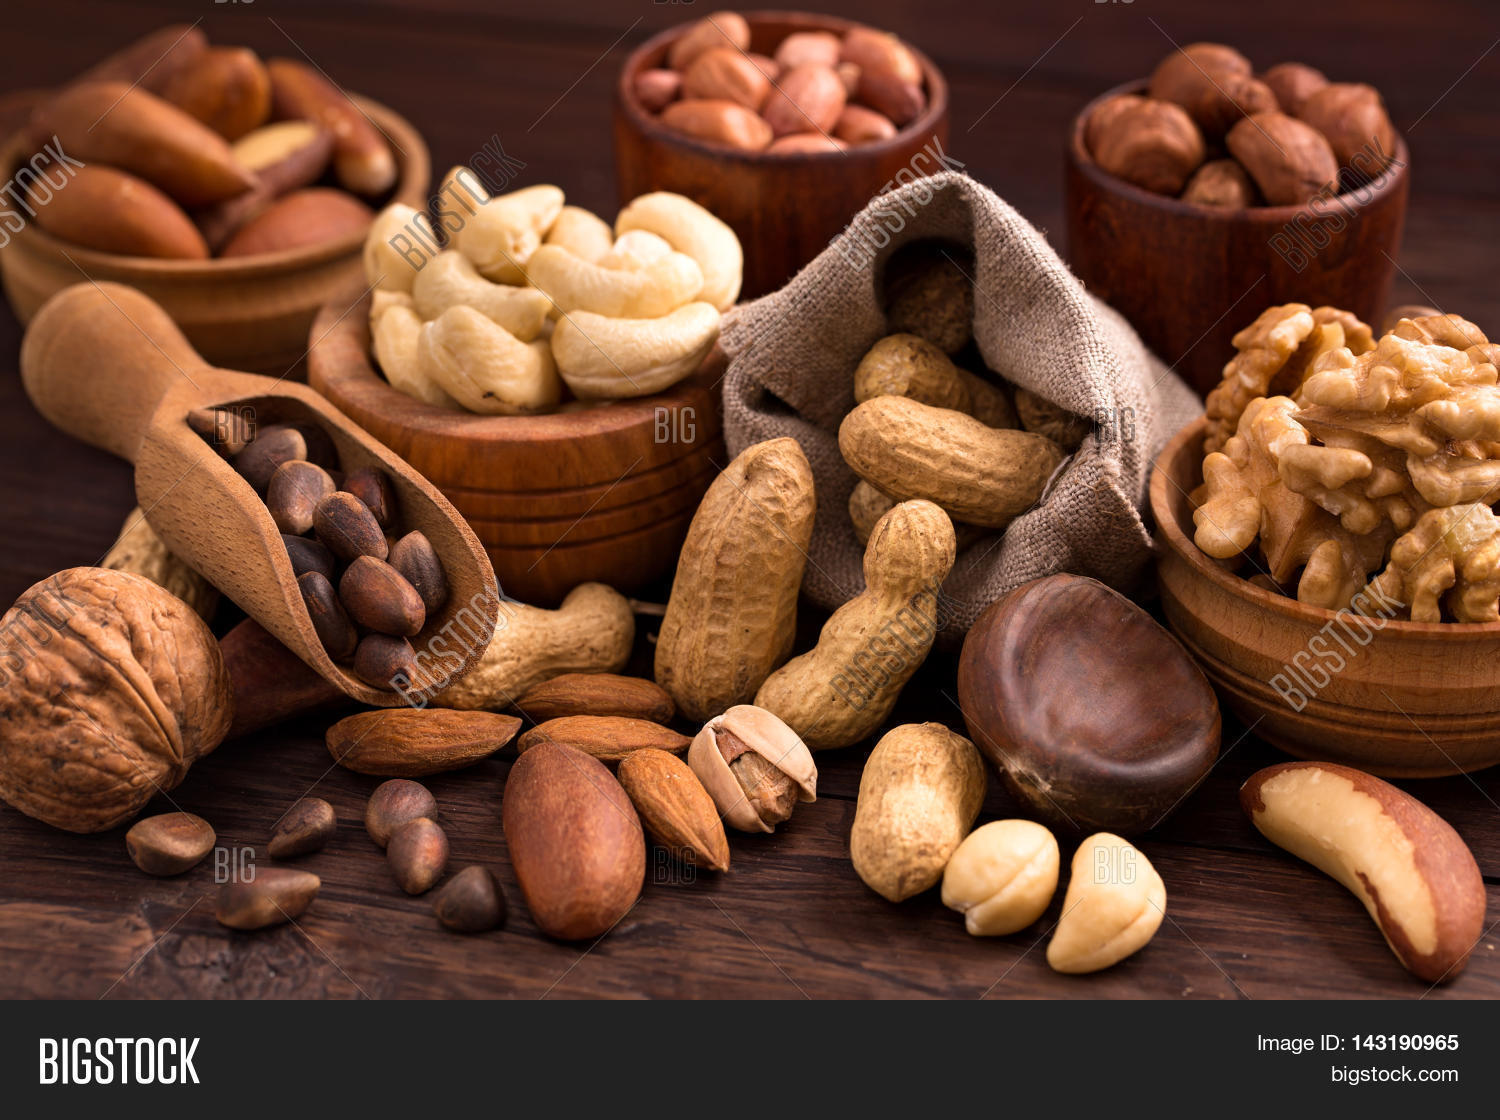 Different Types Nuts  Image & Photo (Free Trial) | Bigstock